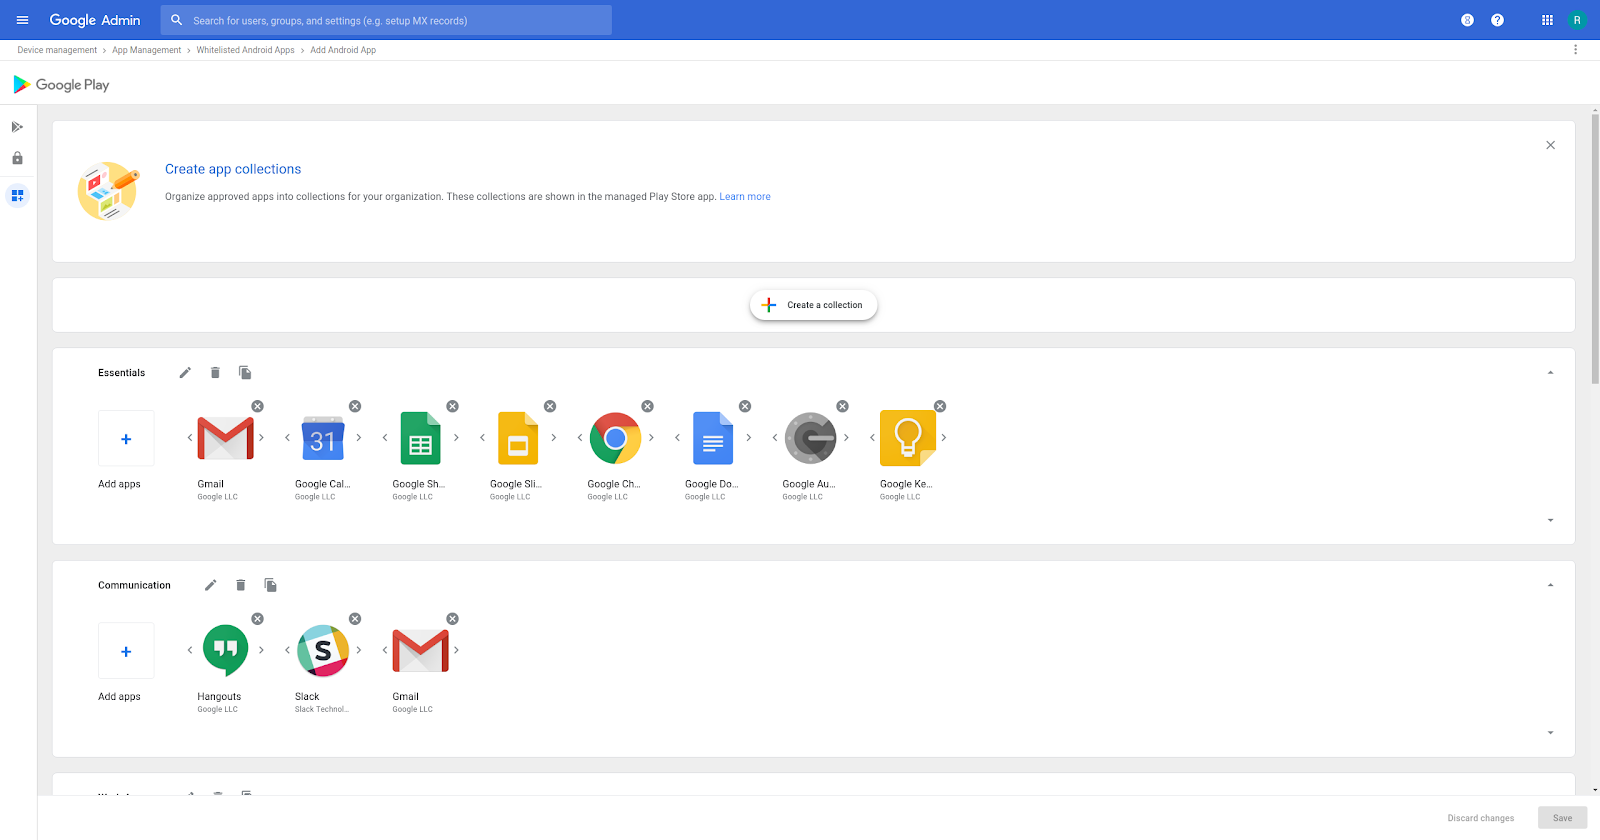 G Suite Updates Blog: Organize and create apps for your